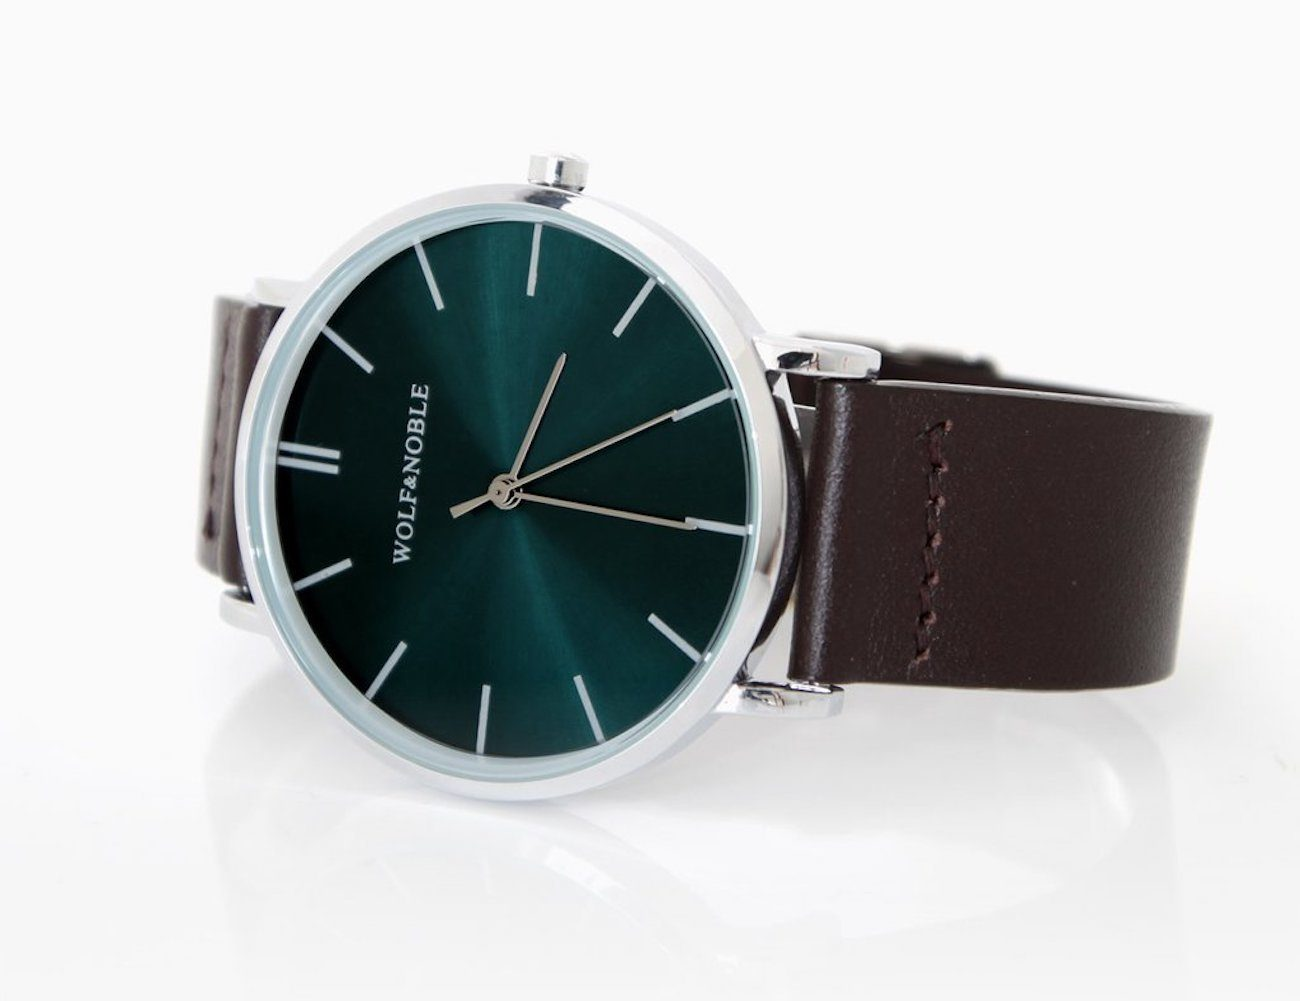 Richmond Green Edition Quartz Watch